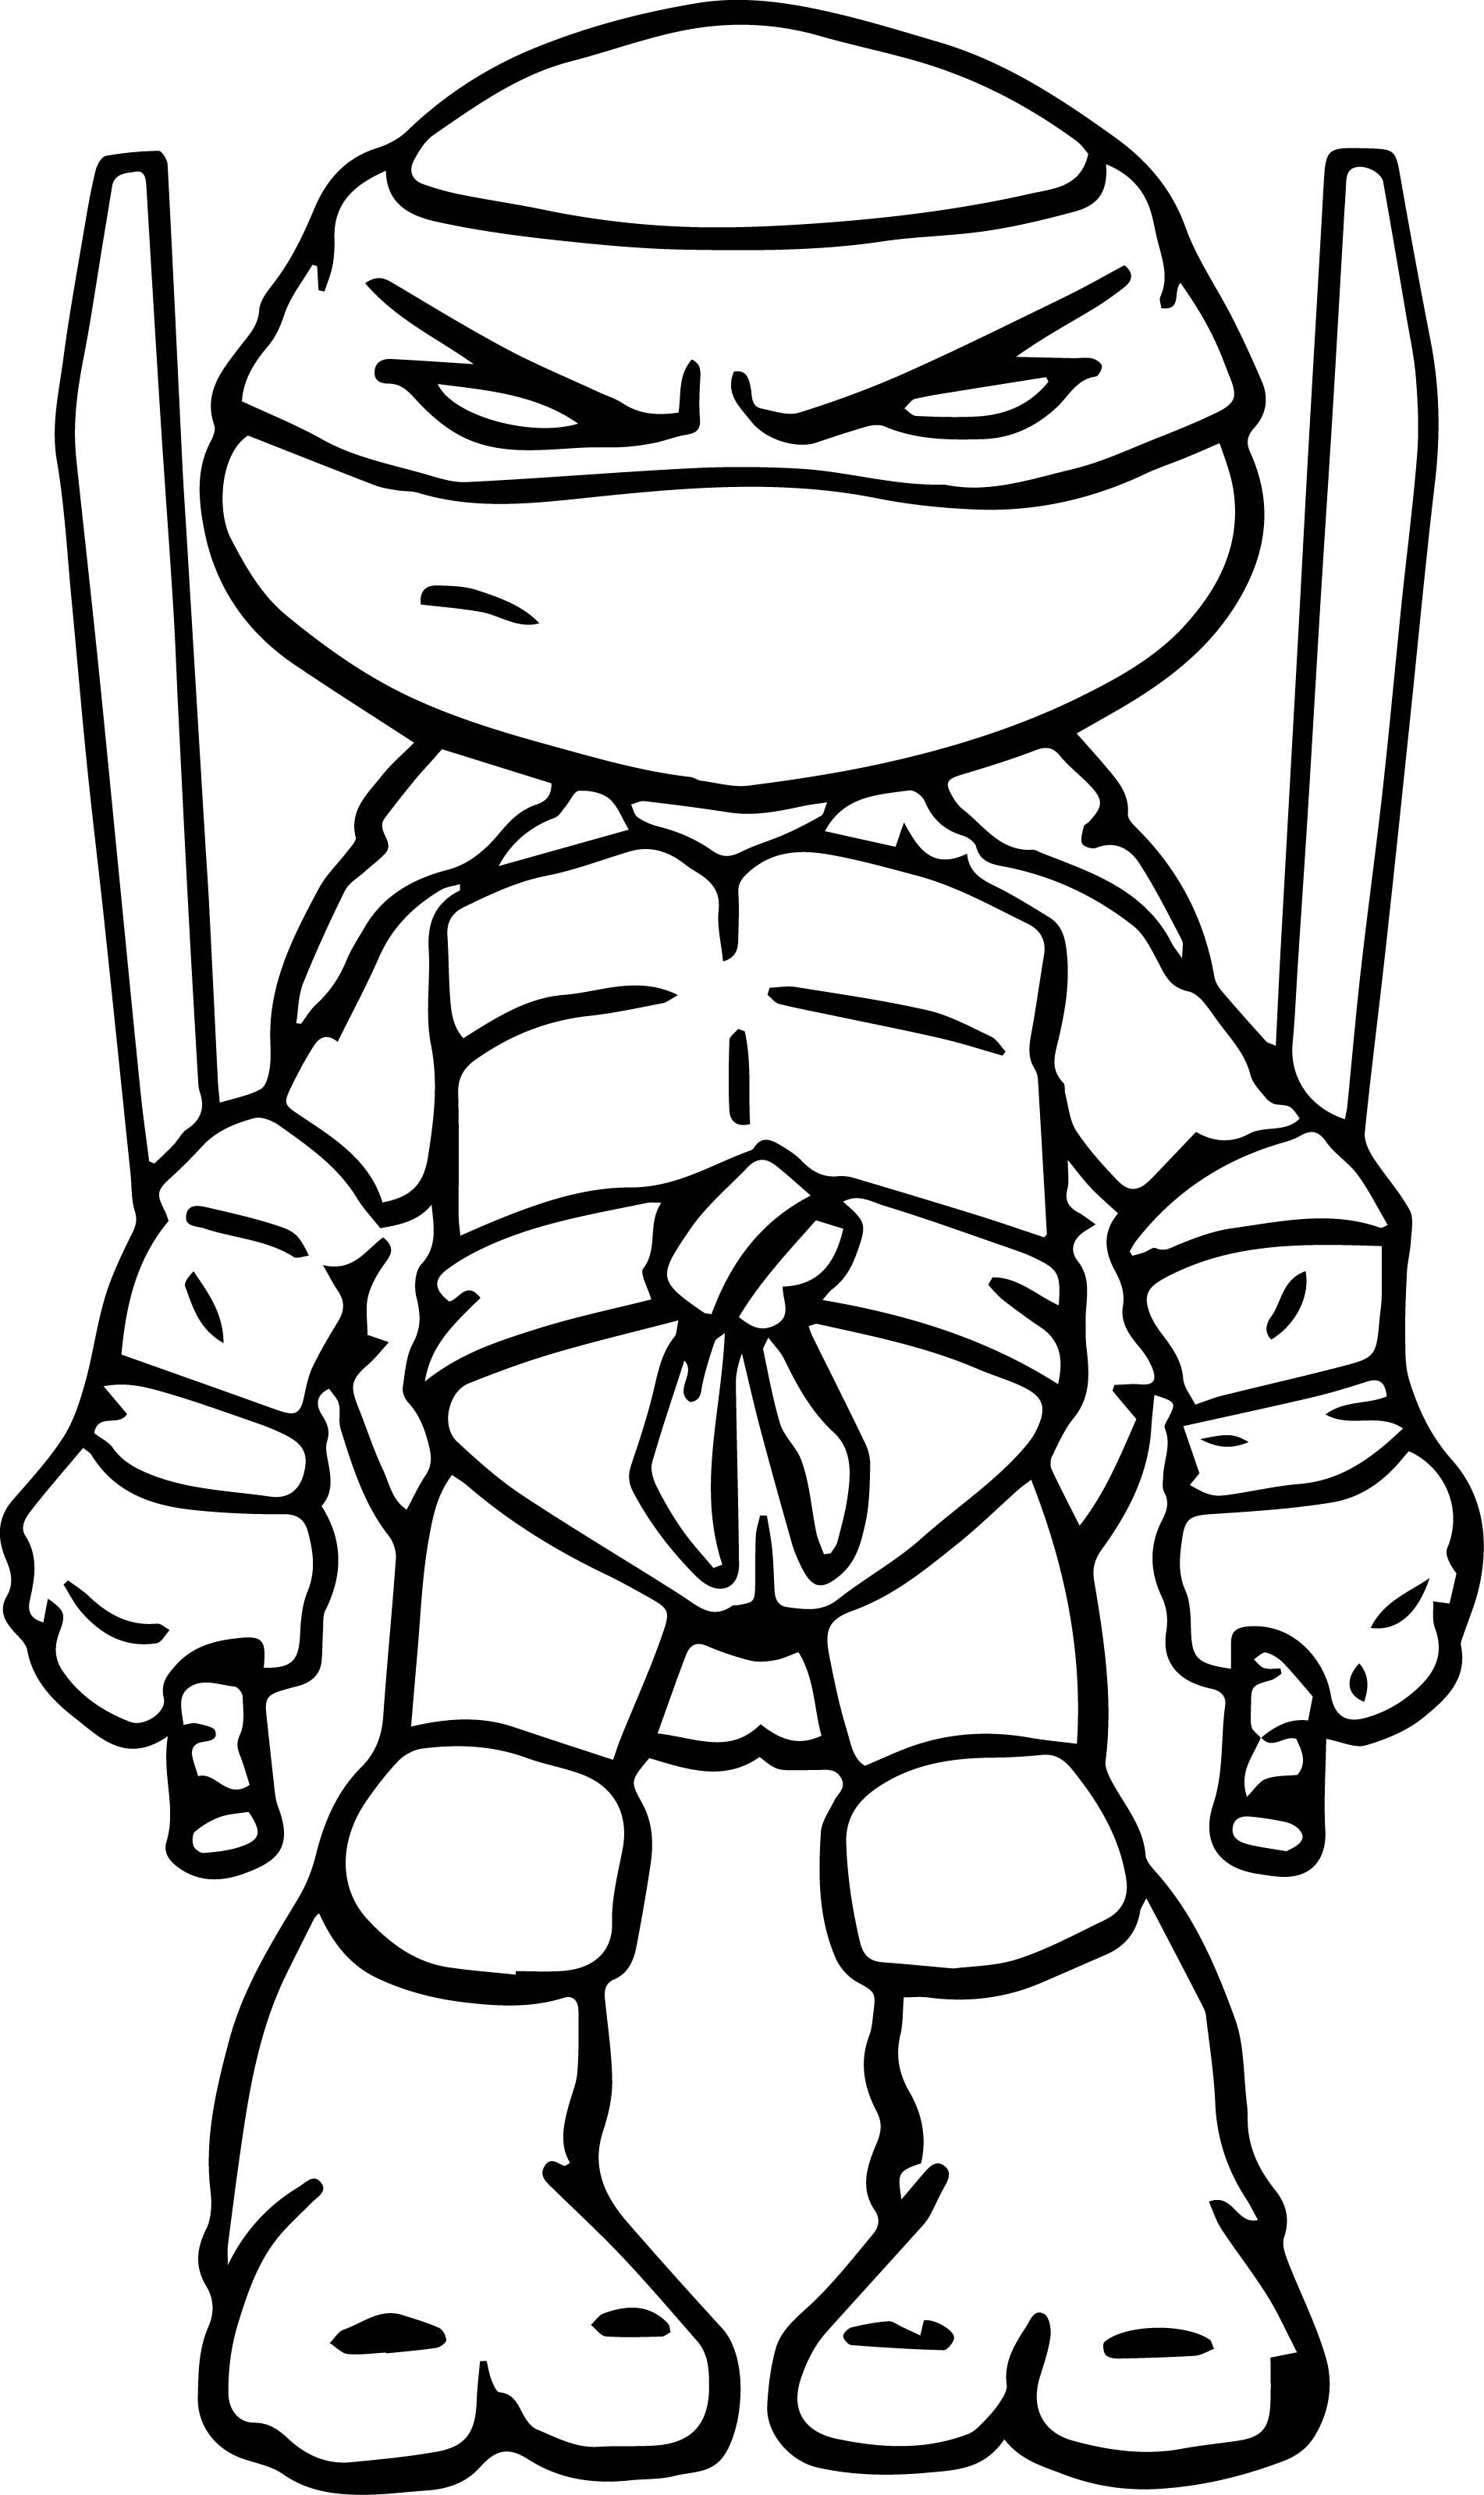 Frais Images tortues Ninja A Colorier